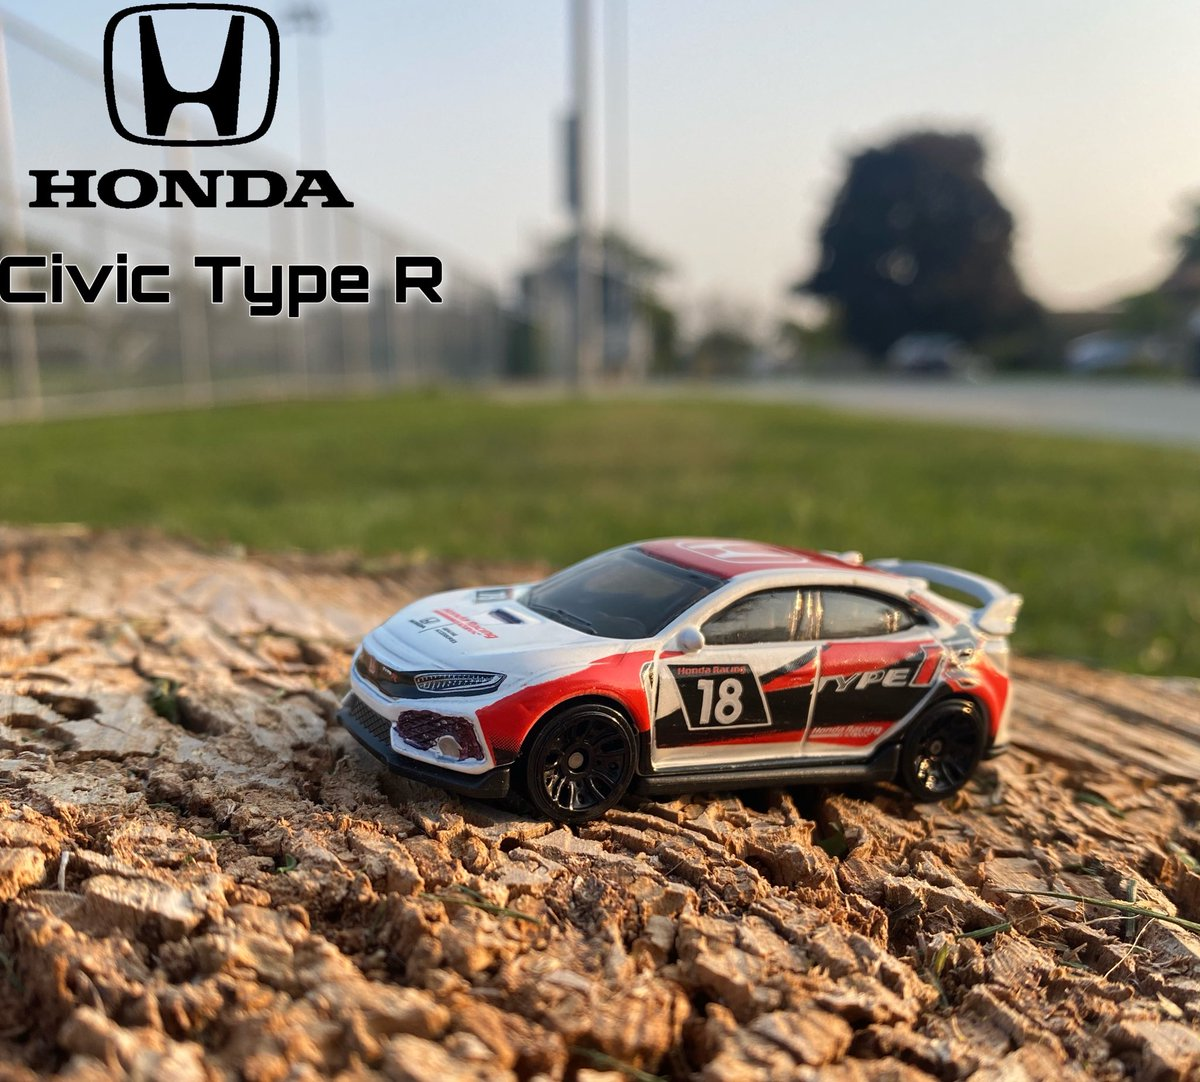 2018 Honda Civic Type R #honda #hondacivic #HotWheelsLegends #hotwheels https://t.co/GW4oZC1TYM